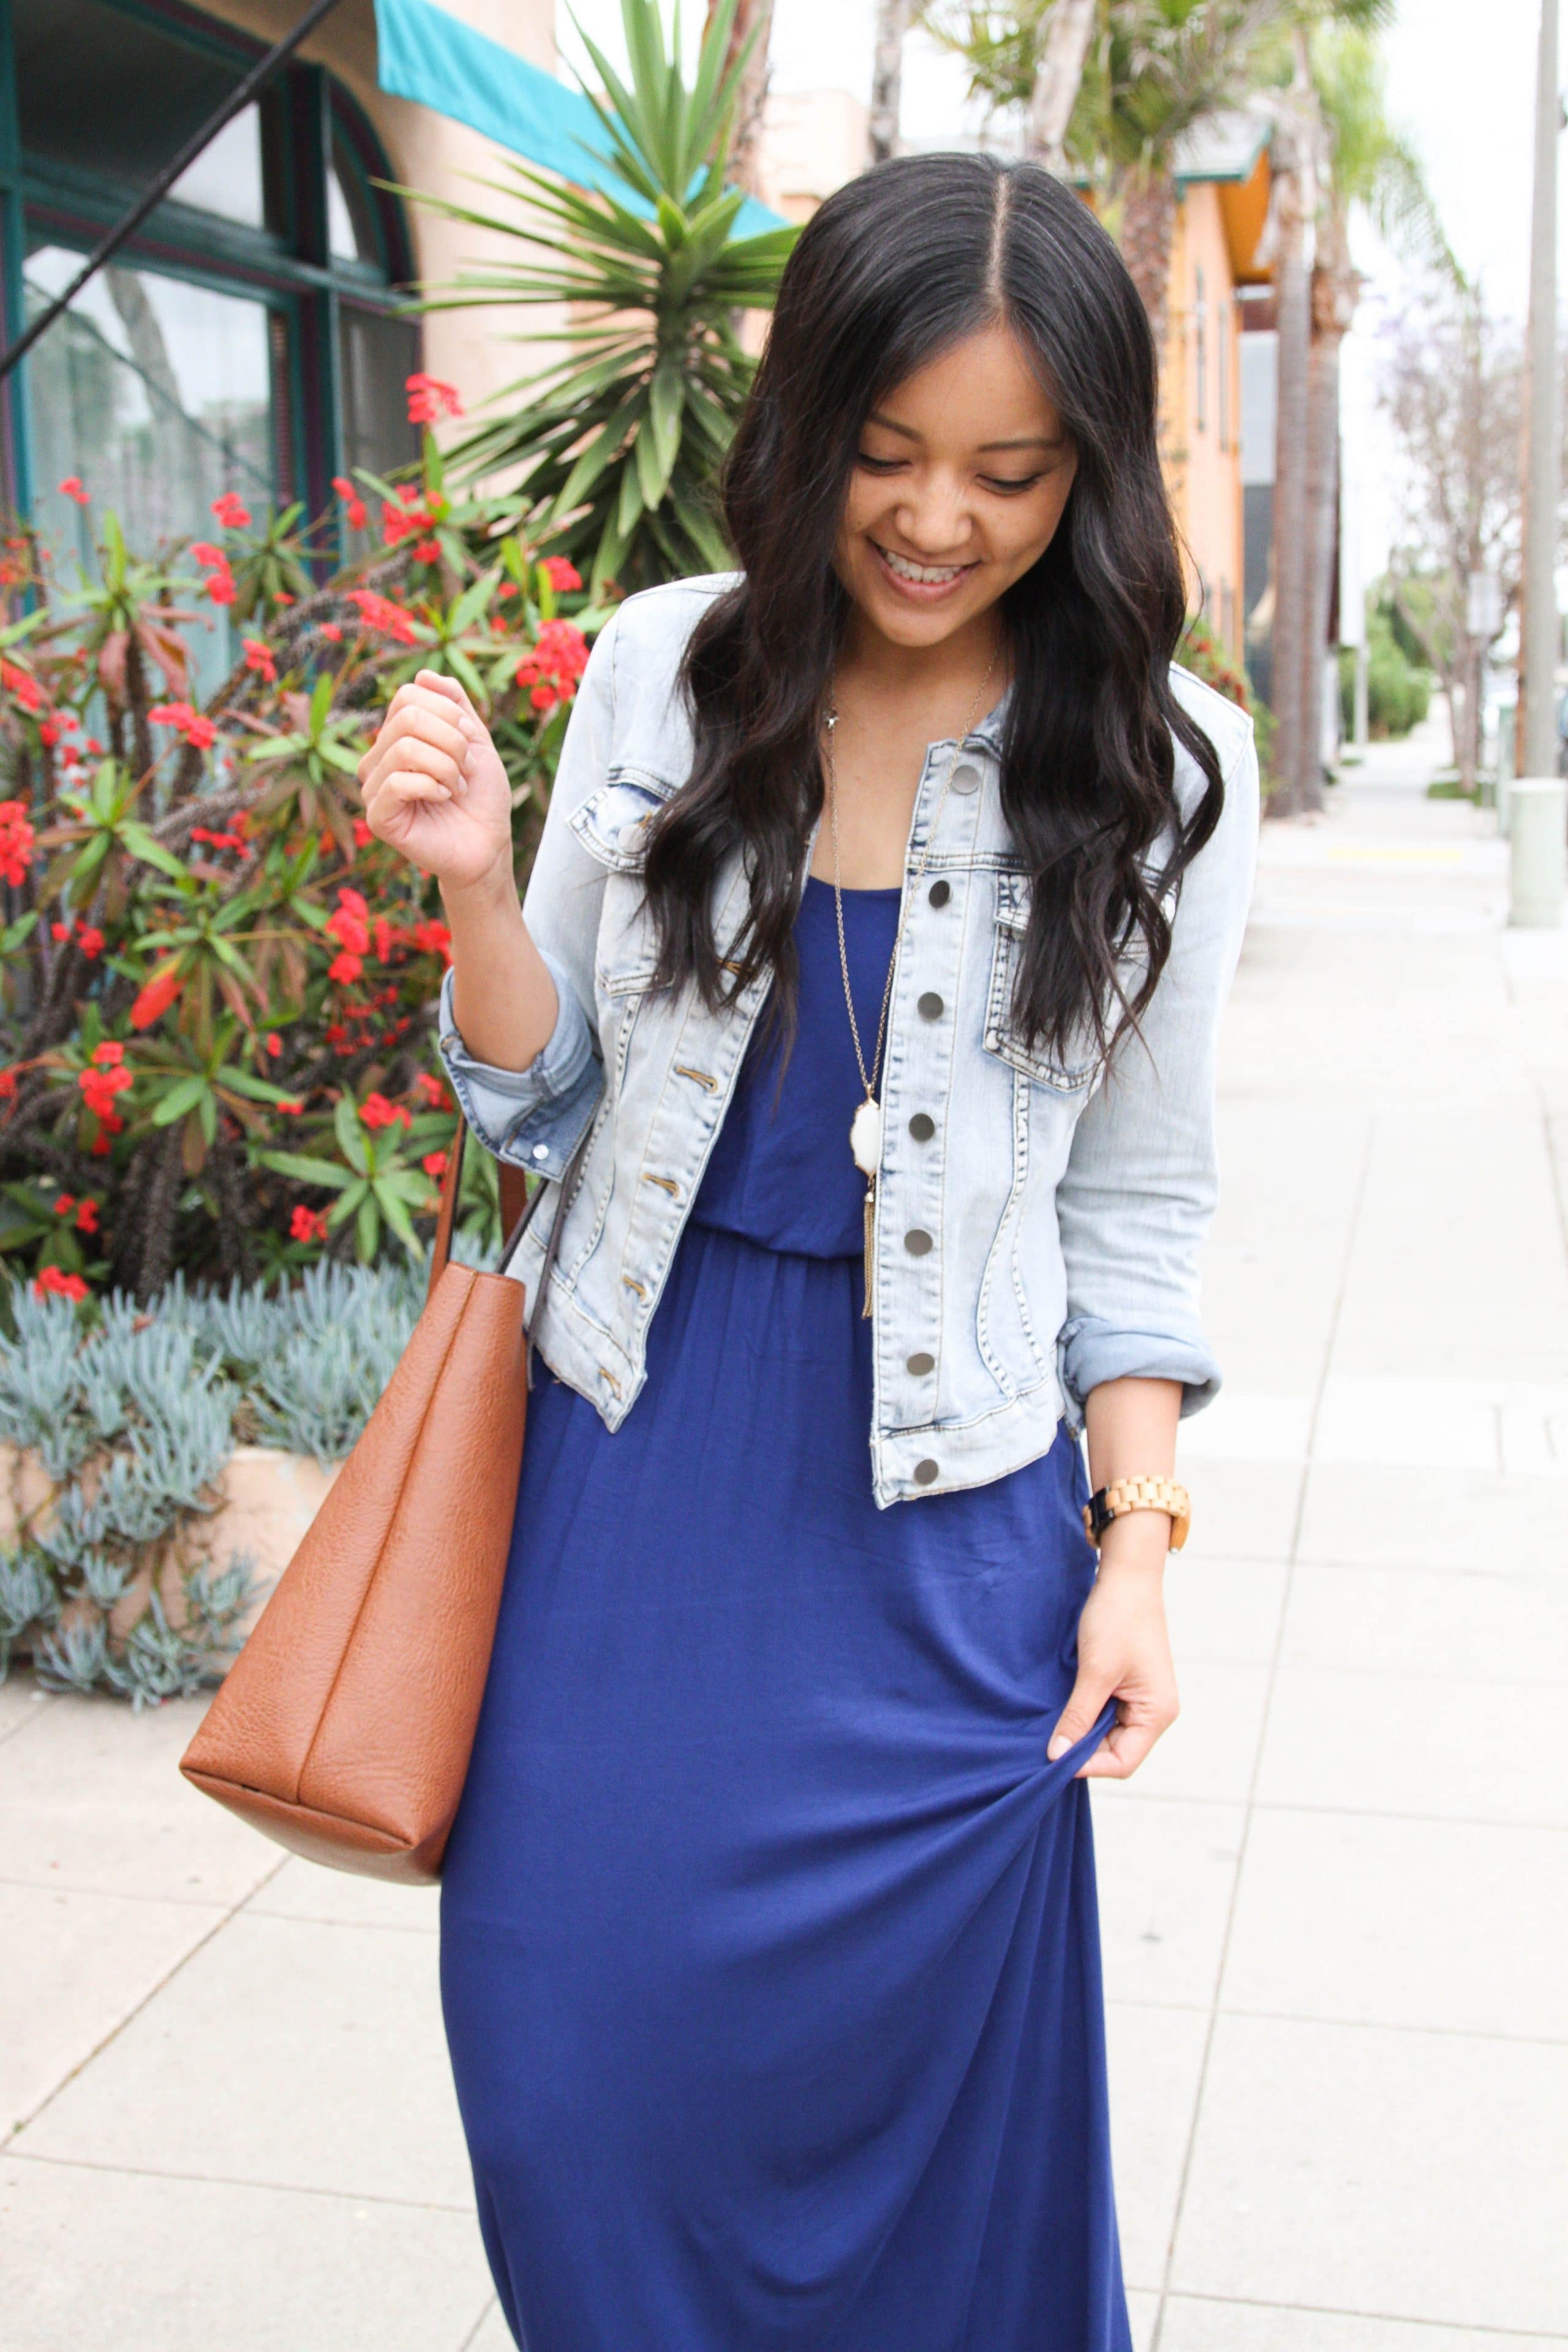 d8526ca0d blue maxi dress, denim jacket, brown tote and statement necklace looking  down